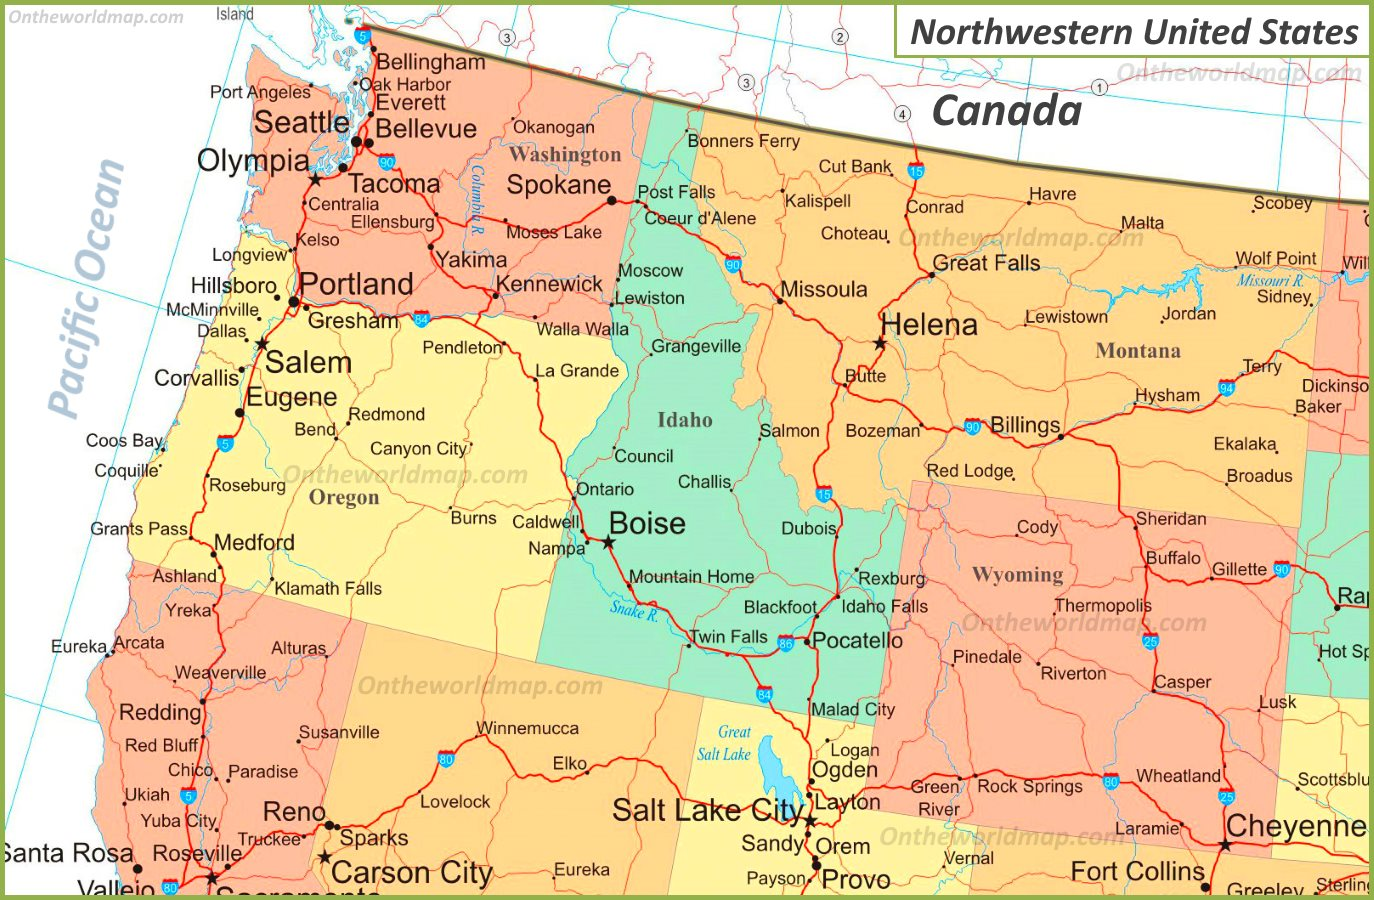 map of the northwestern united states Map Of Northwestern United States